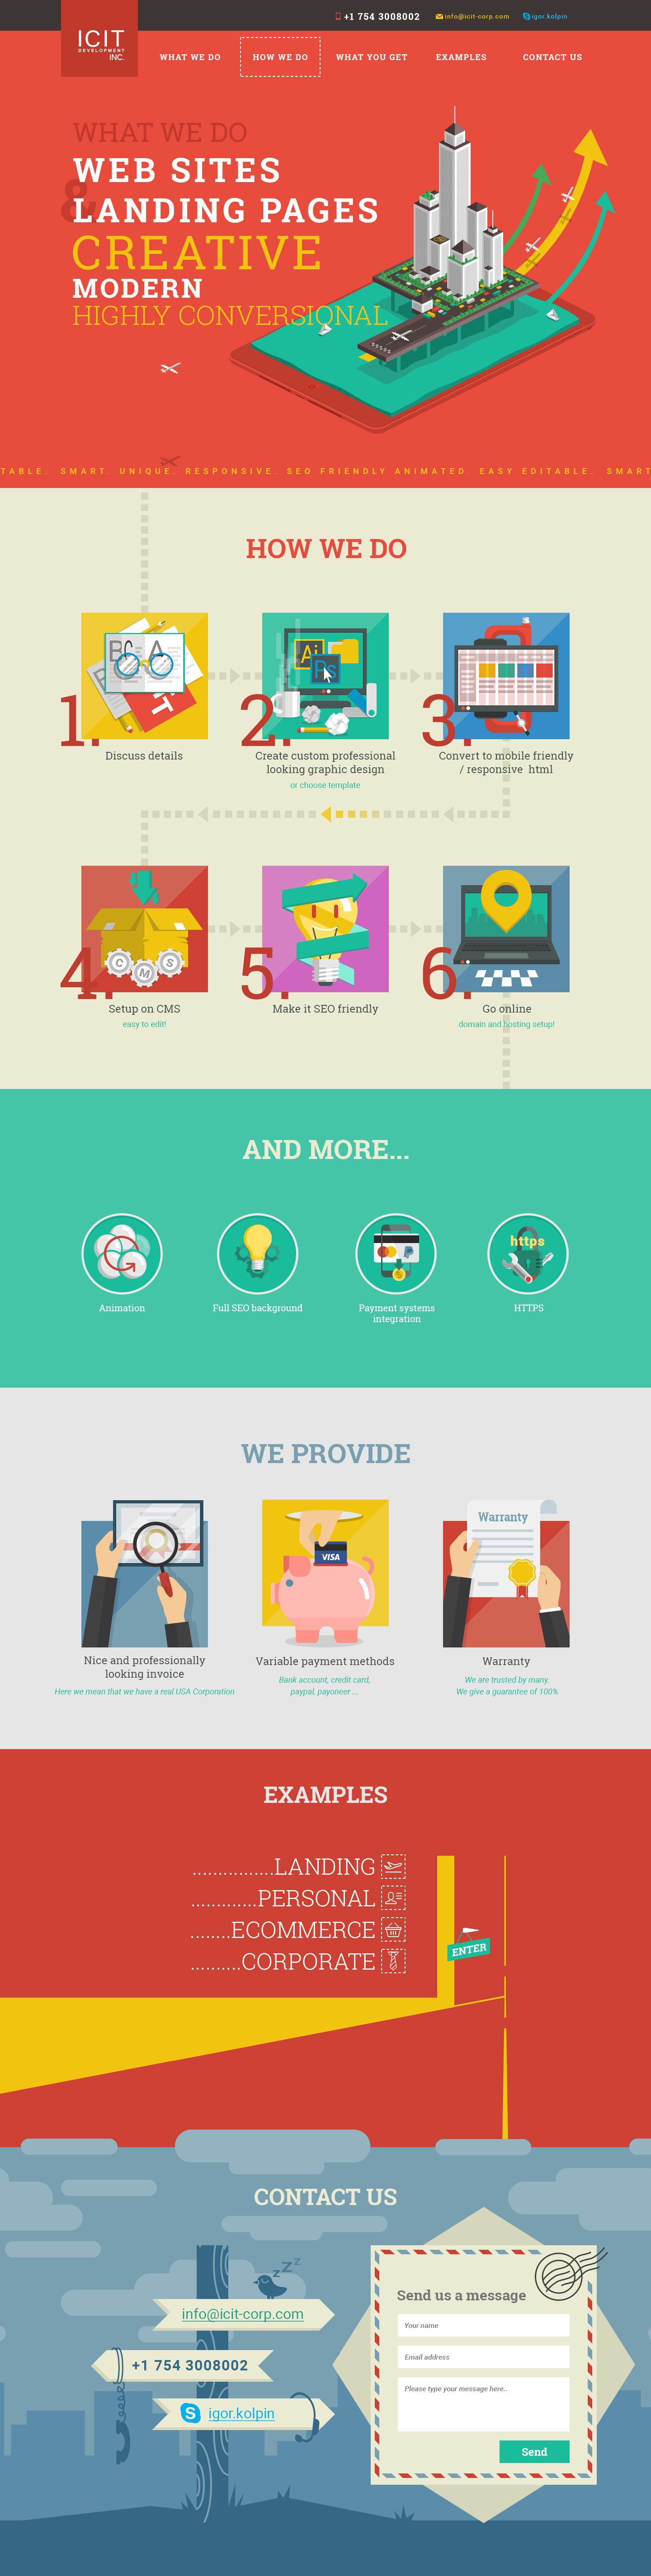 Web Design Company In San Diego Wordpress Back End Responsive Custom Graphic Design Interactive Html5 Animatio Custom Graphic Design Web Design Landing Page